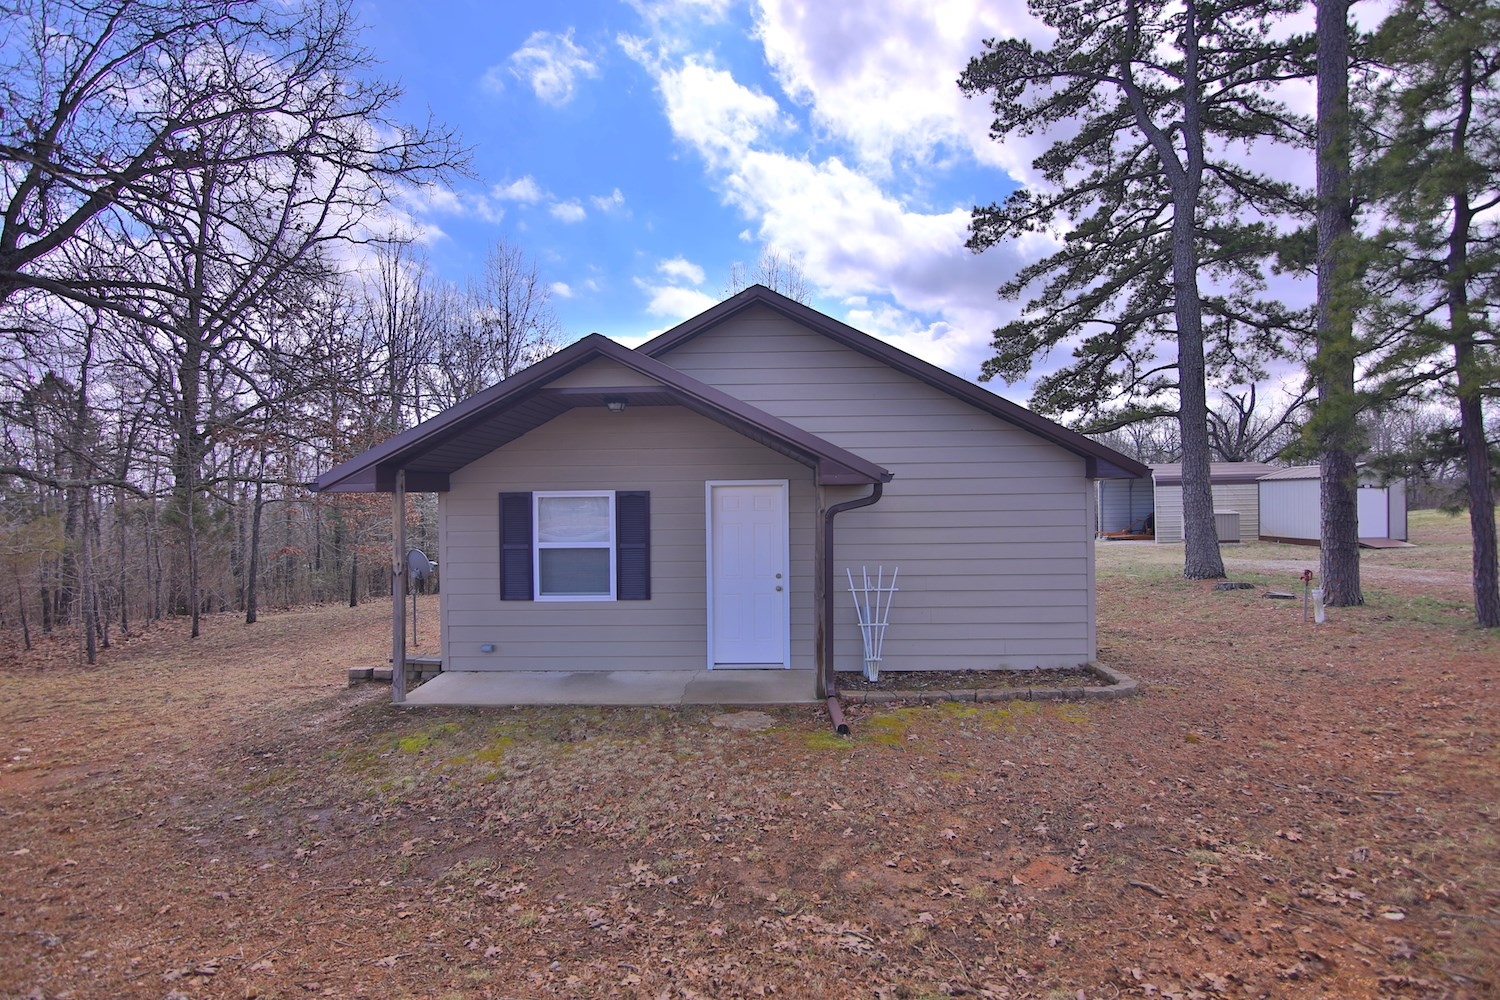 Cabin/Cottage on Hunting Land for Sale in Southern Missouri